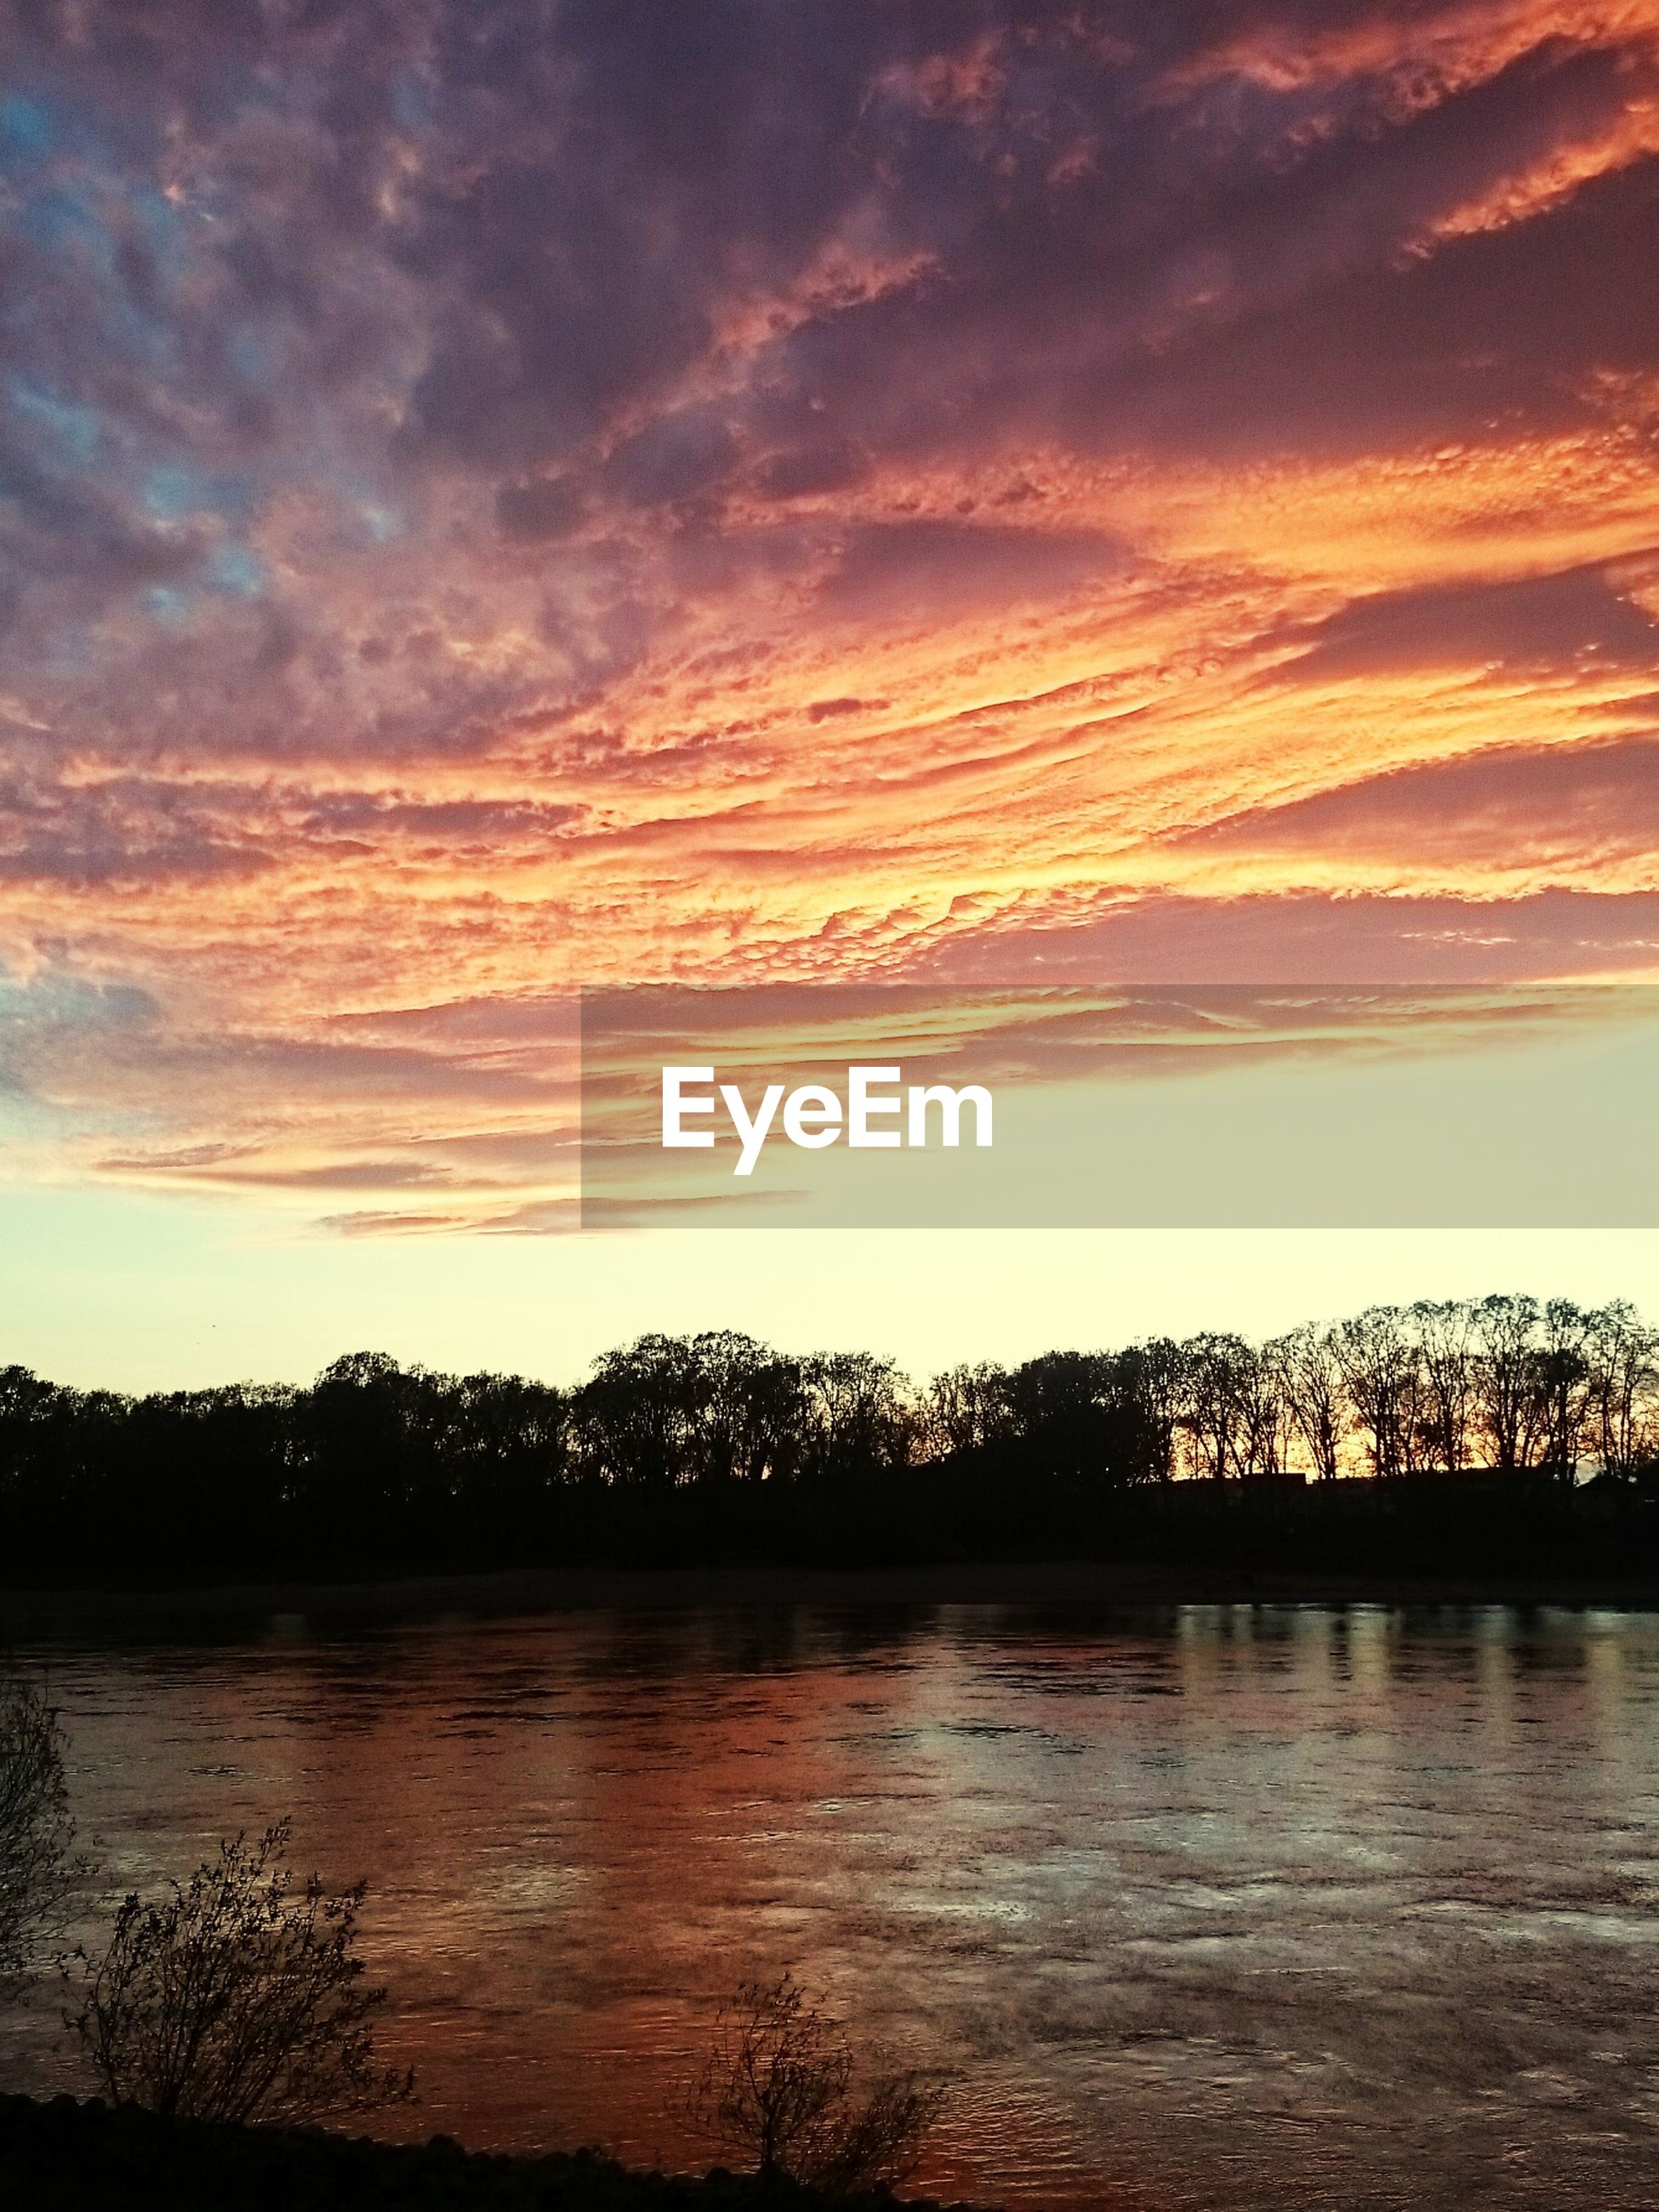 Idyllic shot of silhouette trees by river against cloudy sunset sky